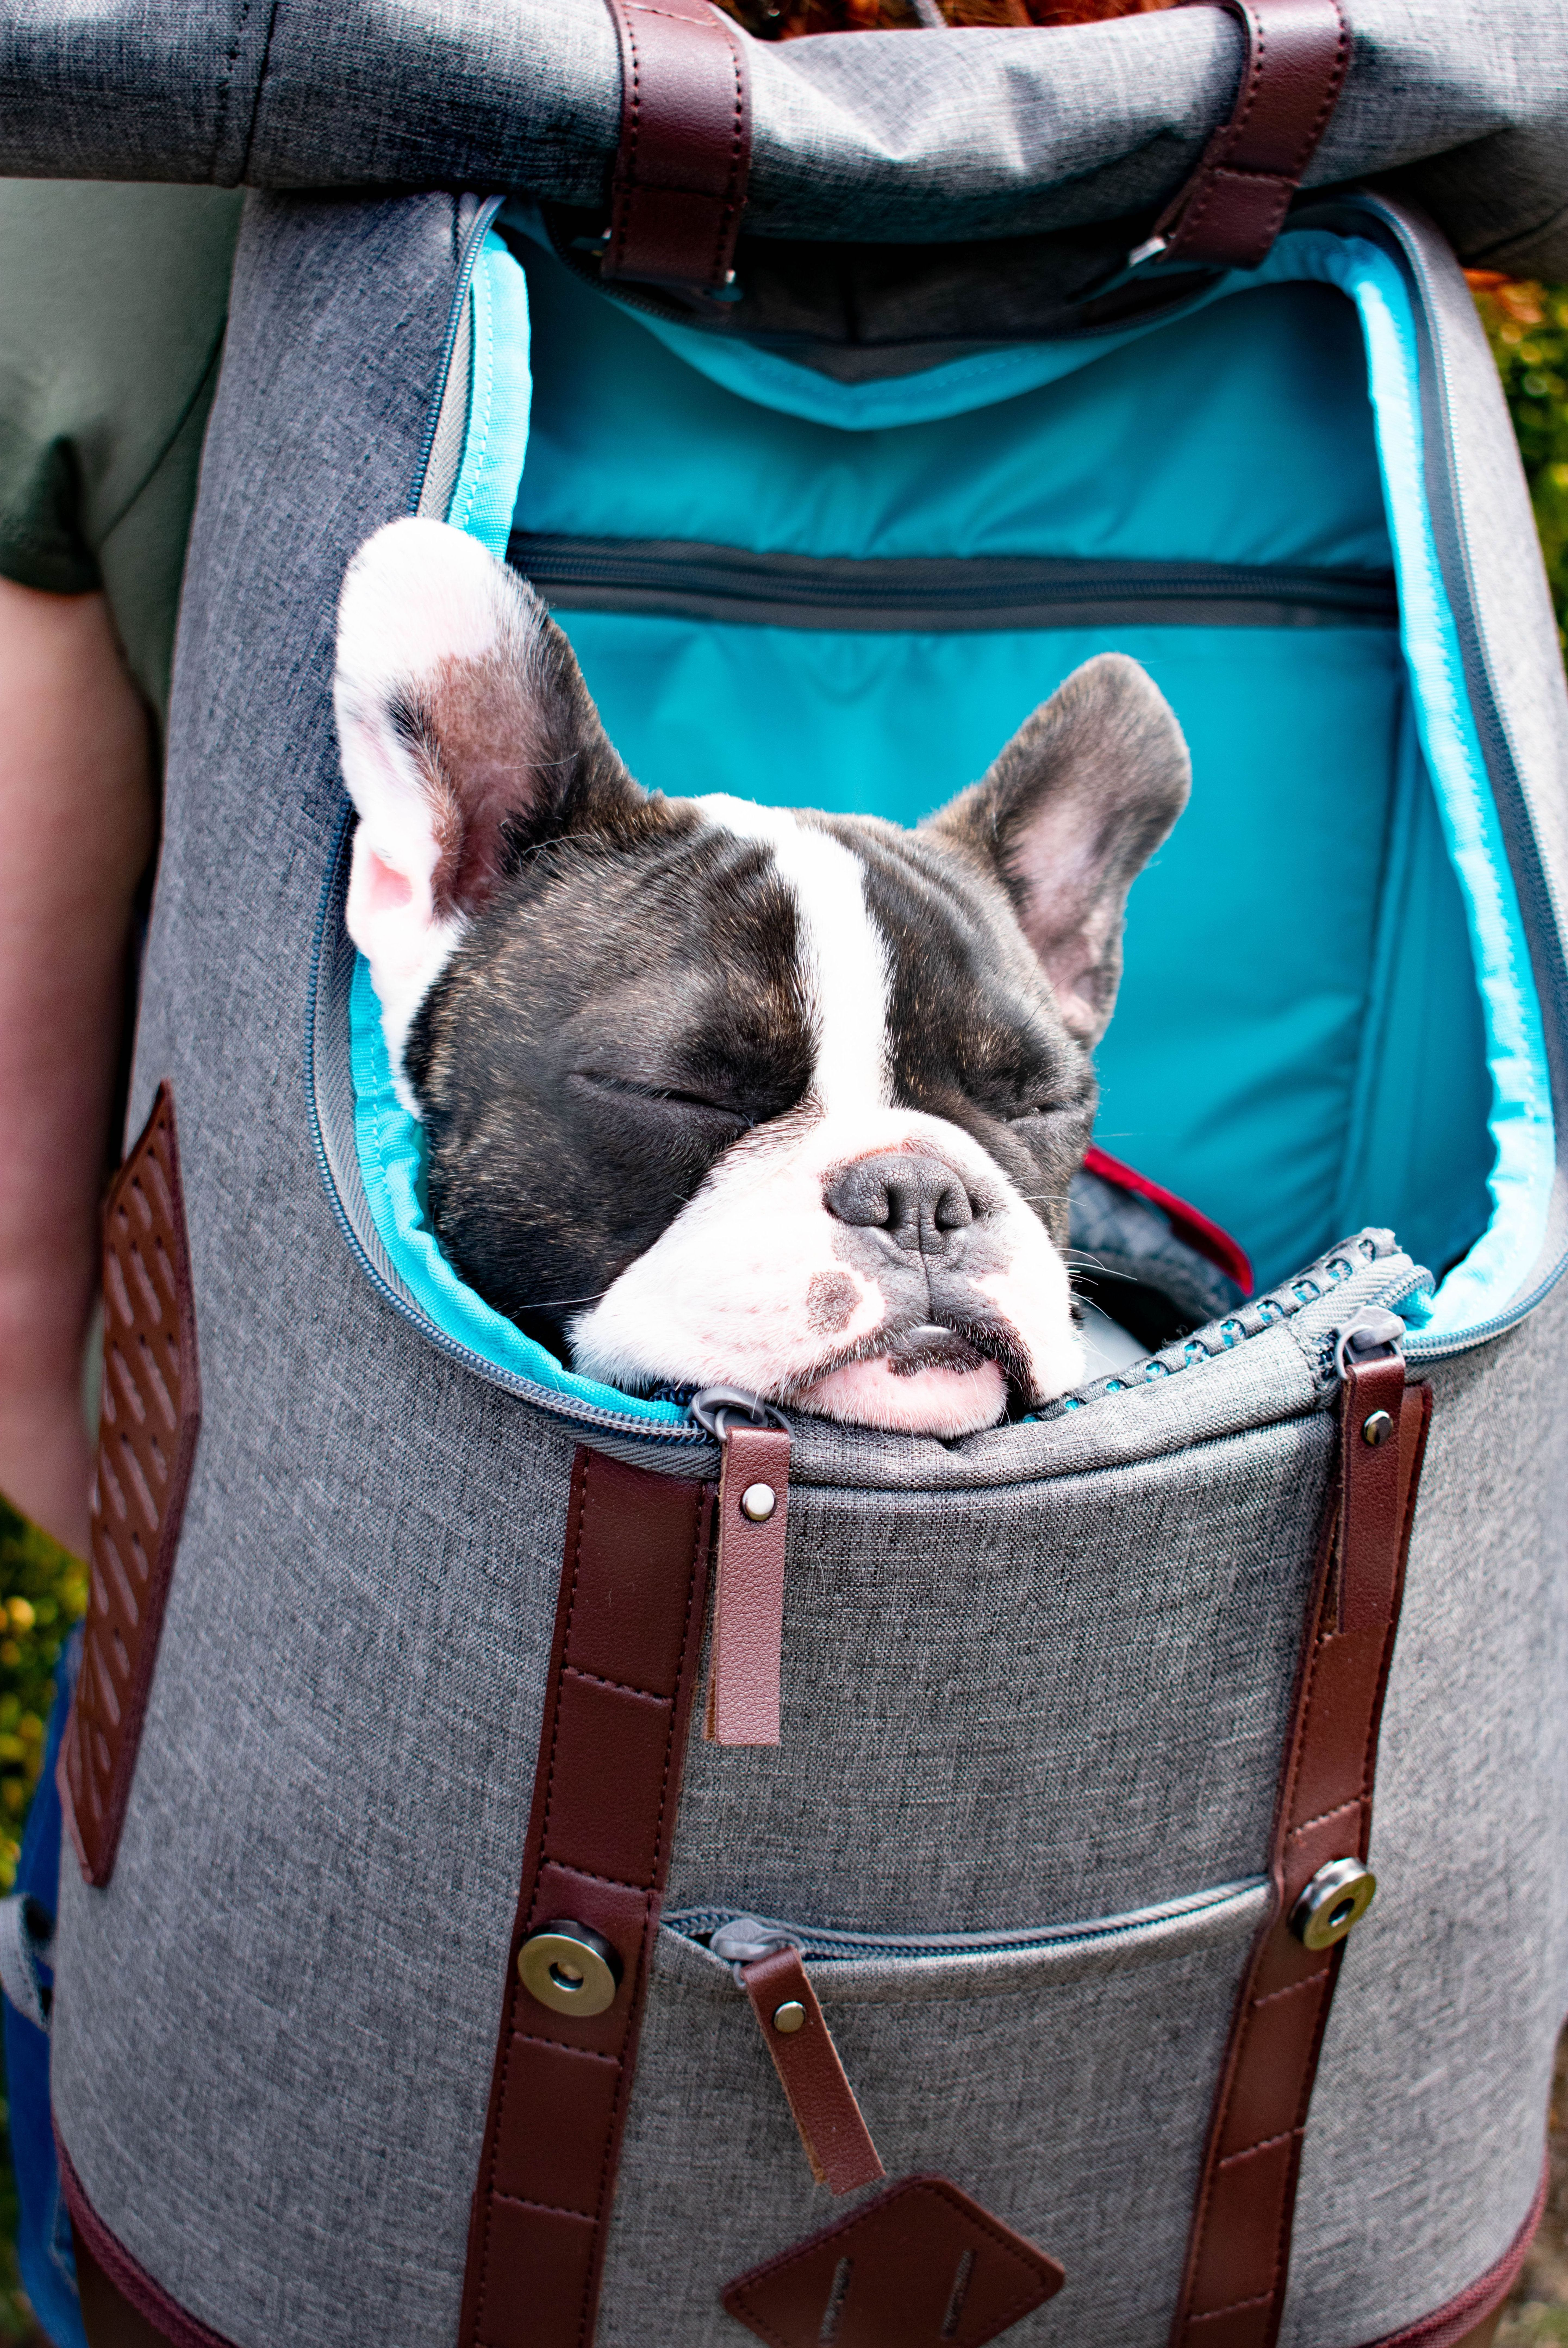 Did You Know That The K9 Rucksack Is Perfect For Taking A Little